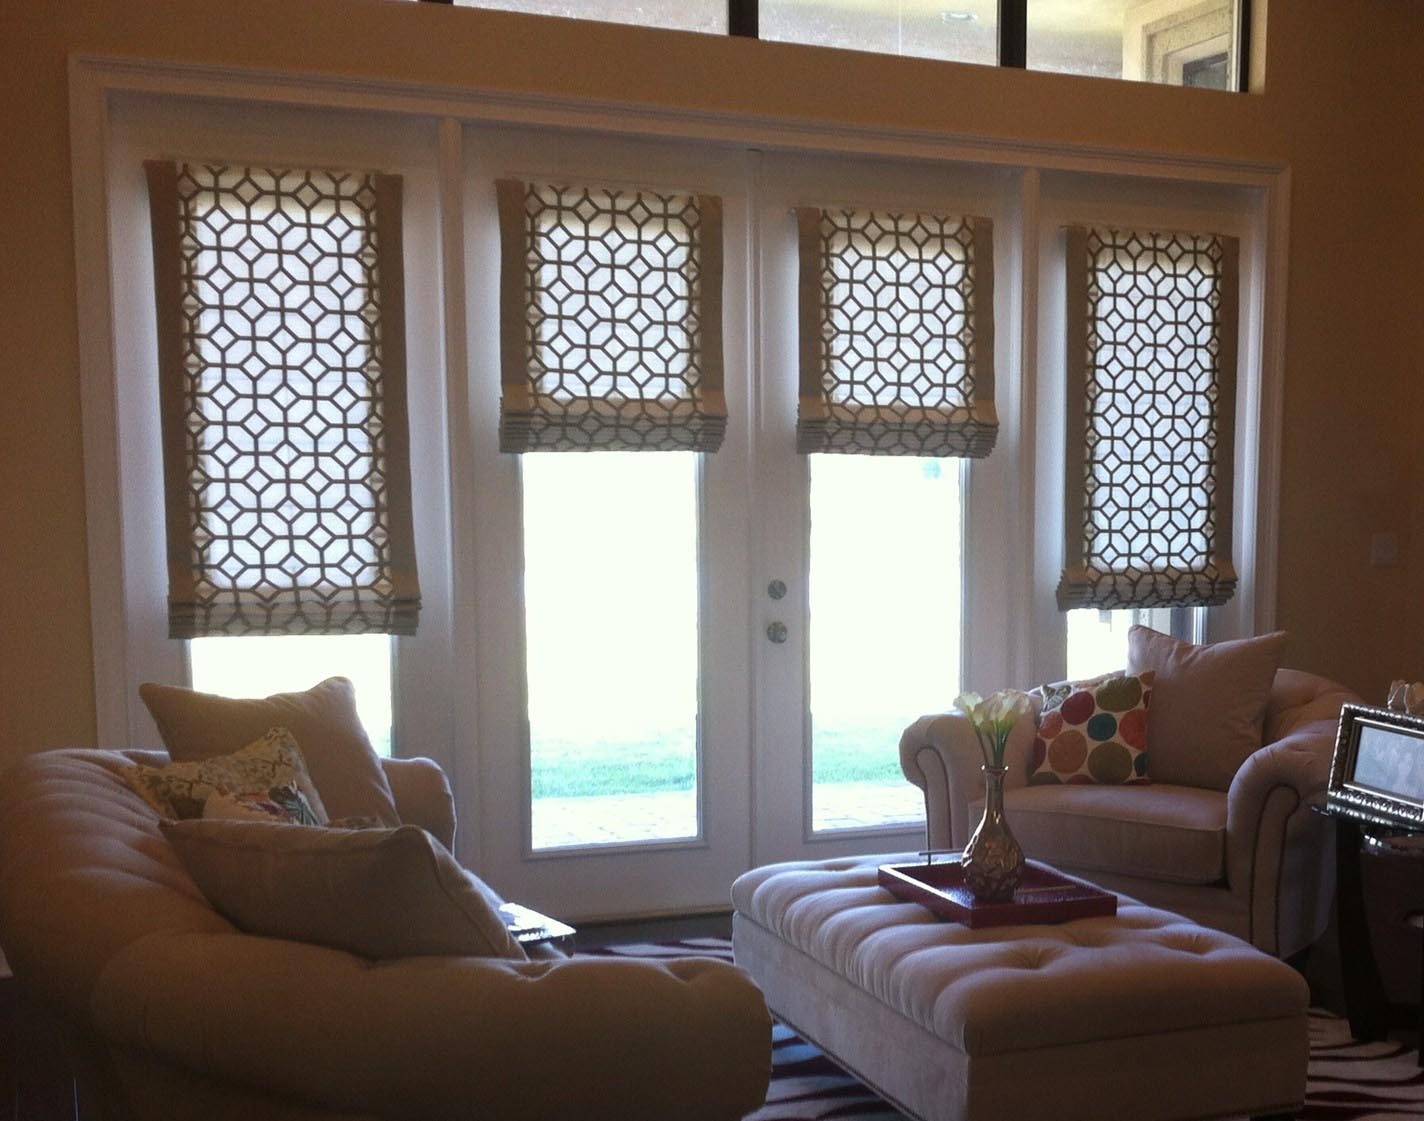 Roman shades for french doors window treatments design ideas for Shades and window treatments